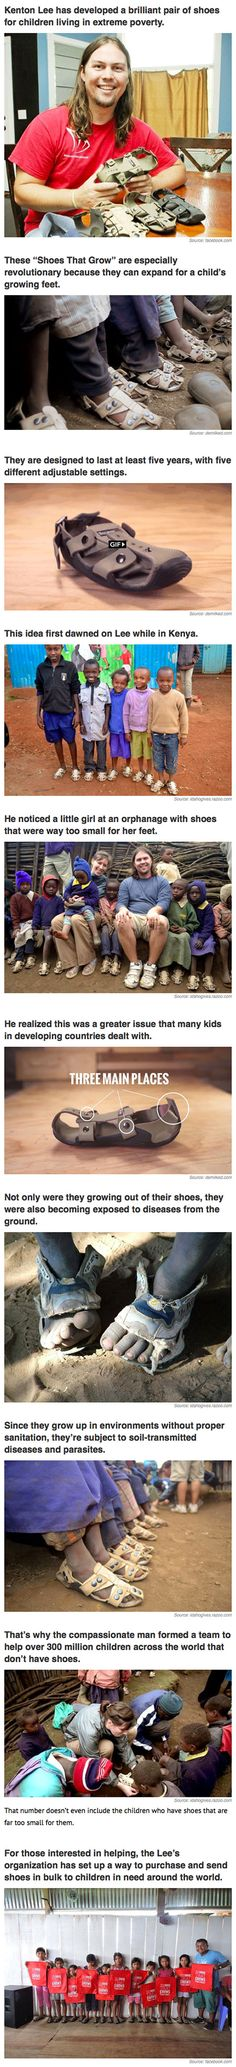 Sometimes, the simplest invention can change millions of lives. That's the goal of The Shoe That Grows, a sandal invented by inventor Kenton Lee that can adjust its size, allowing children in impoverished nations to grow up without having to go barefoot. The shoes, which come in catch-all Small and Large sizes, can grow 5 sizes and last at least 5 years.